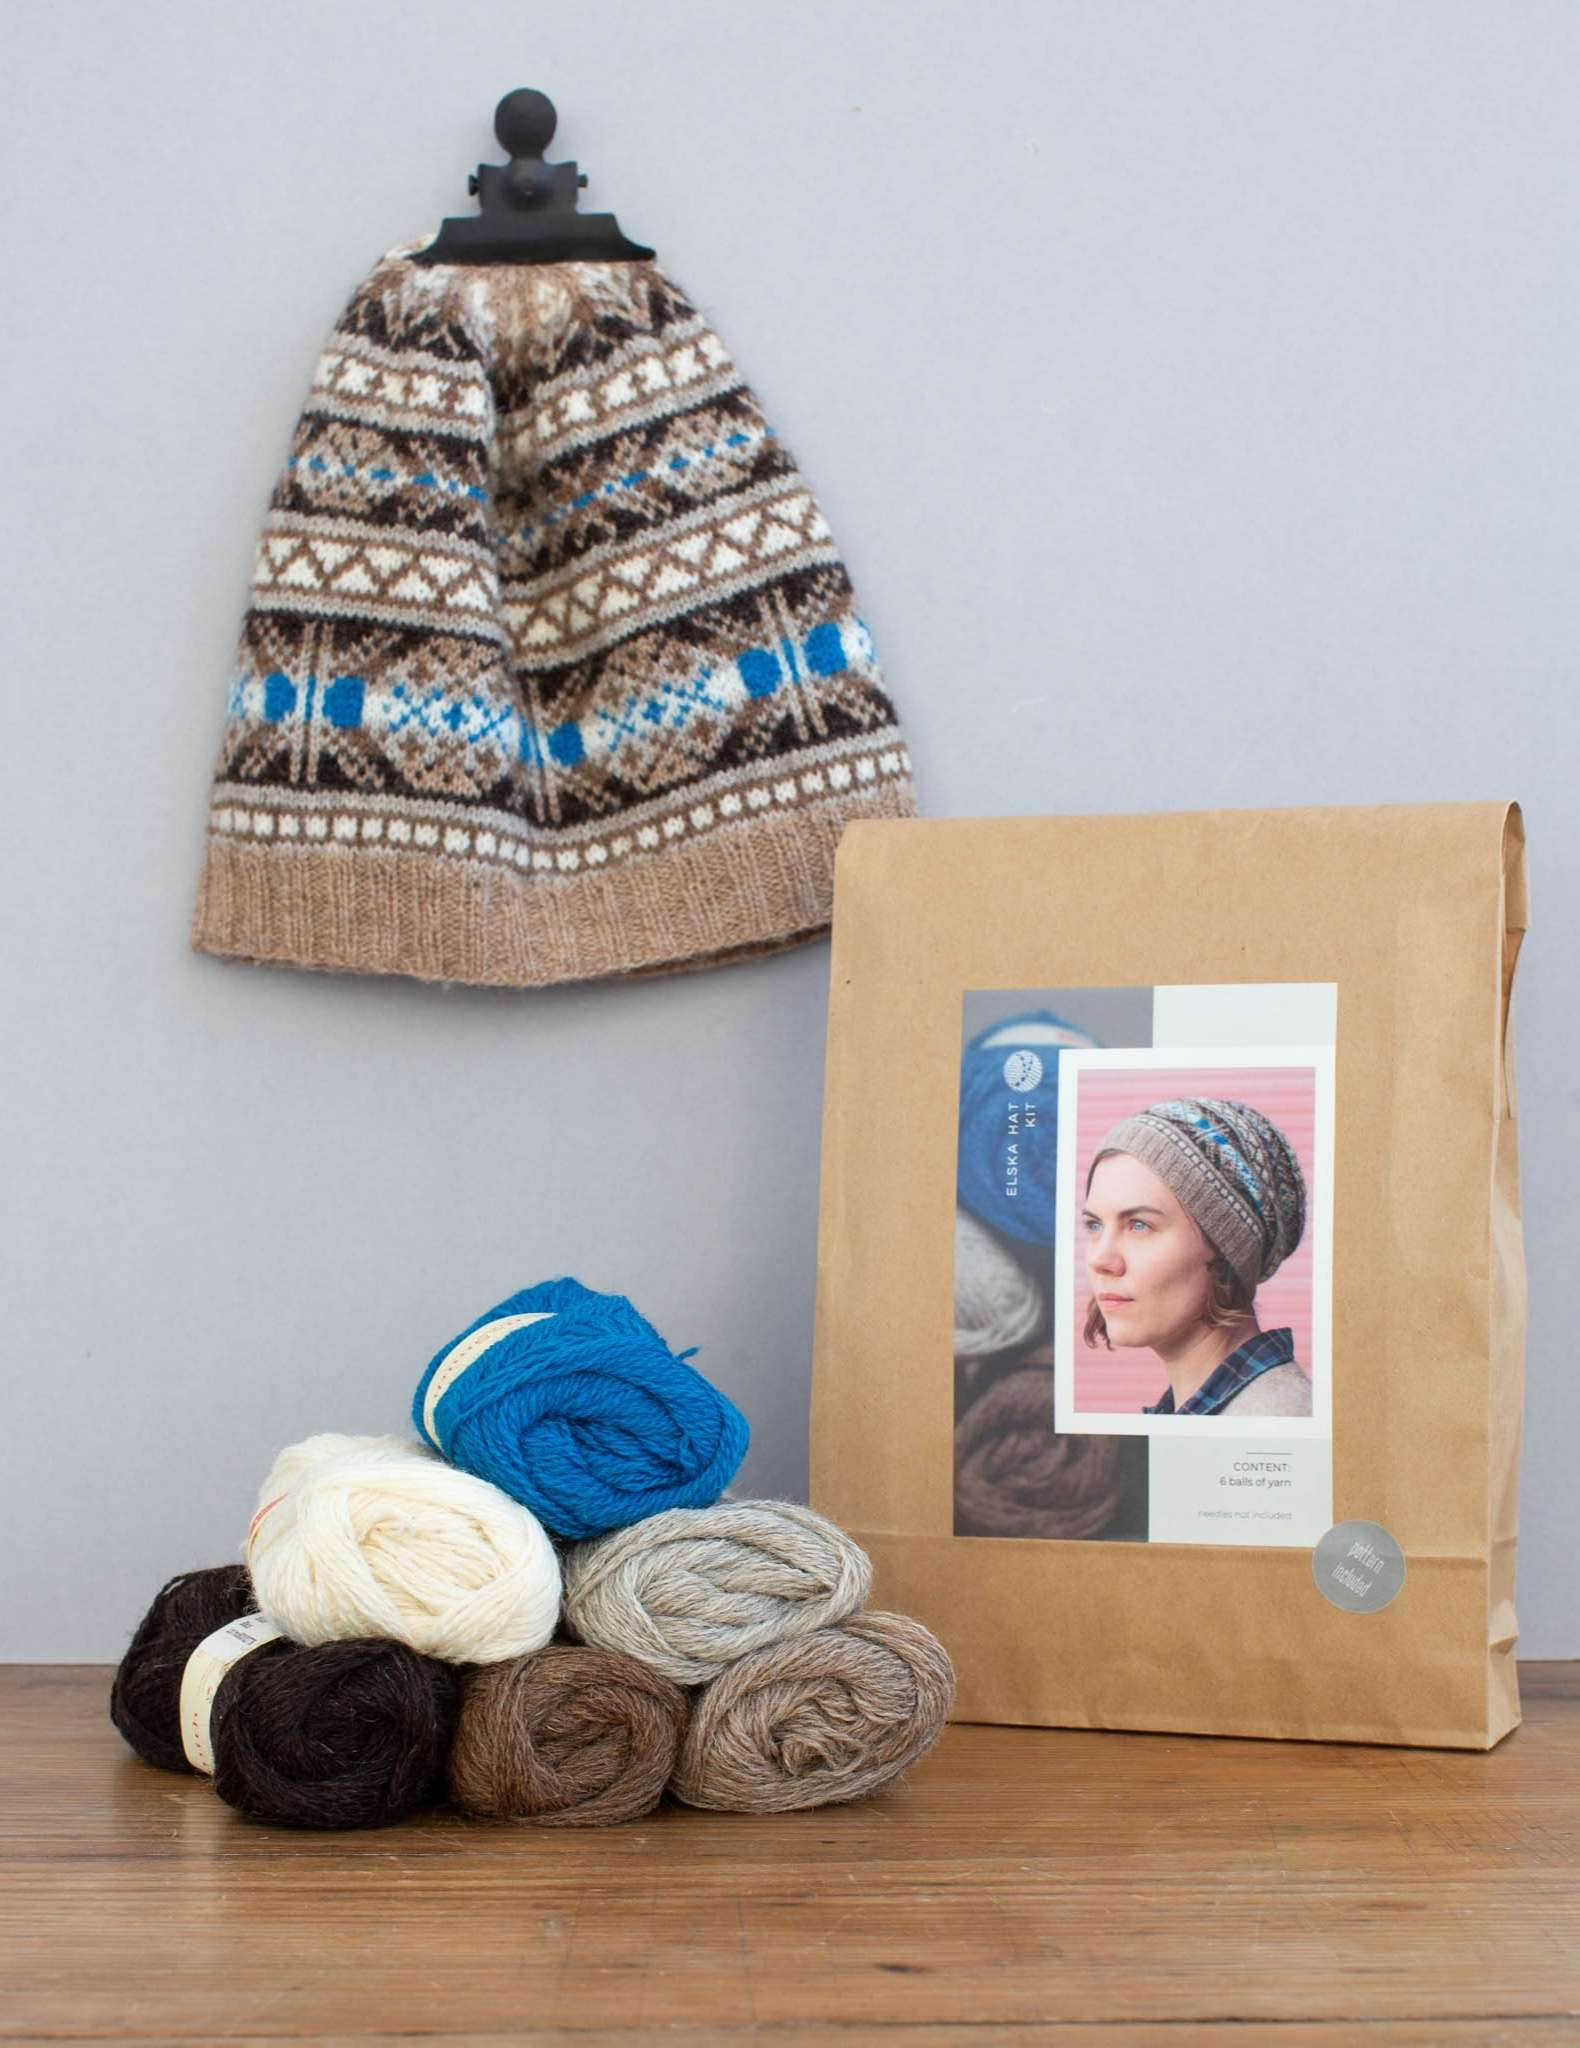 A hat knitting kit in a paper bag, with the hat hanging from the wall behind by a clip and 6 balls of yarn piled in front in blues and neutral colours.